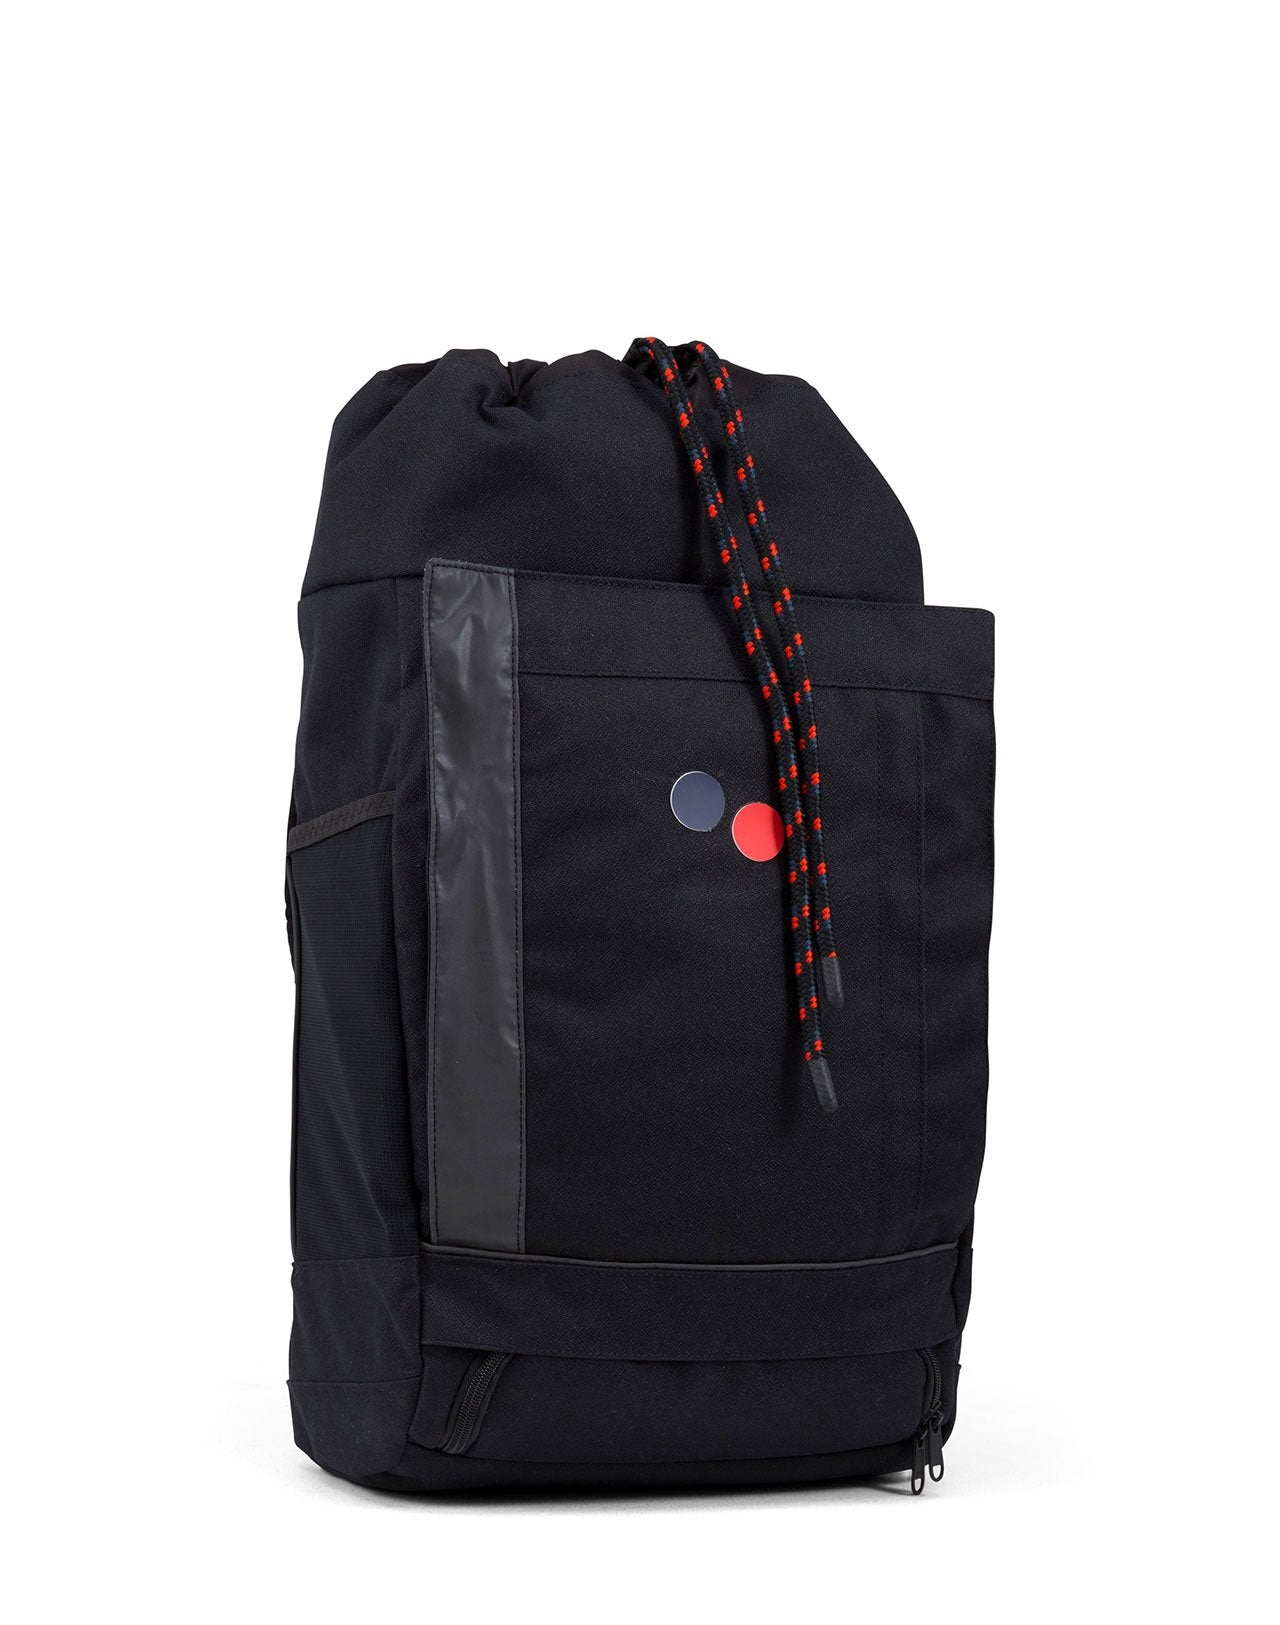 Blok Medium Black Pinqponq sac à dos